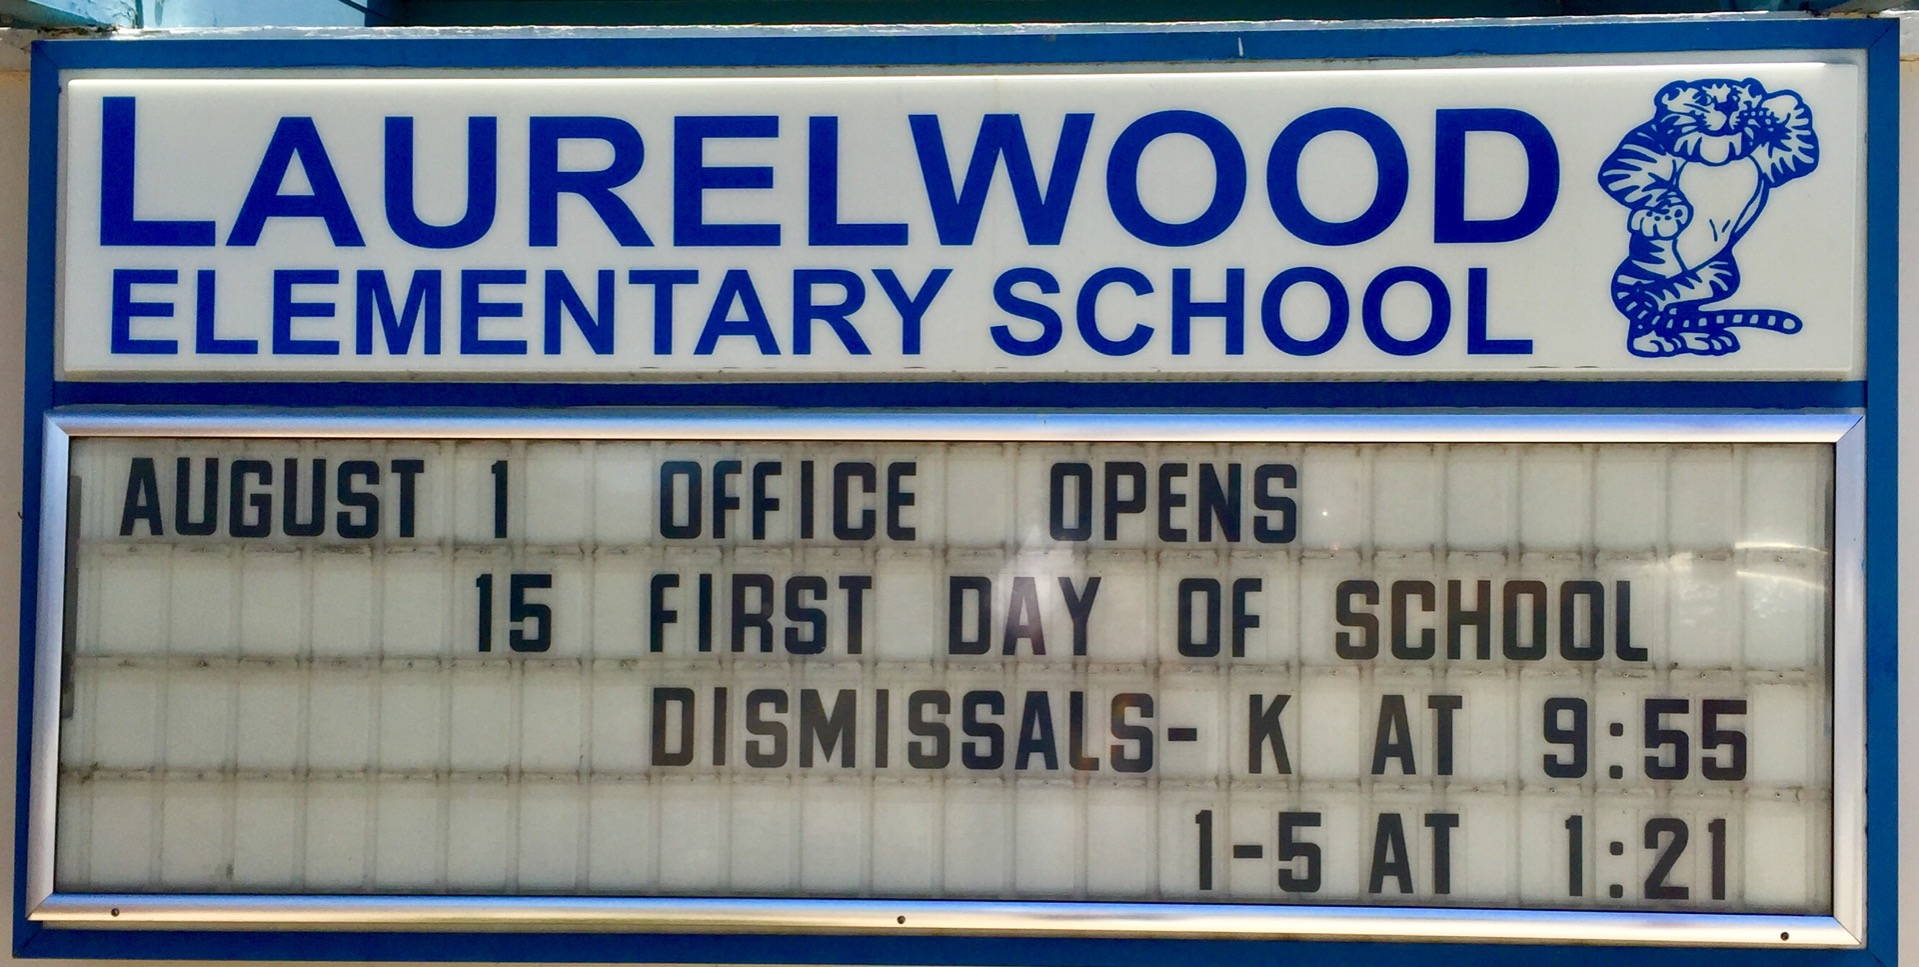 school's marquee for May